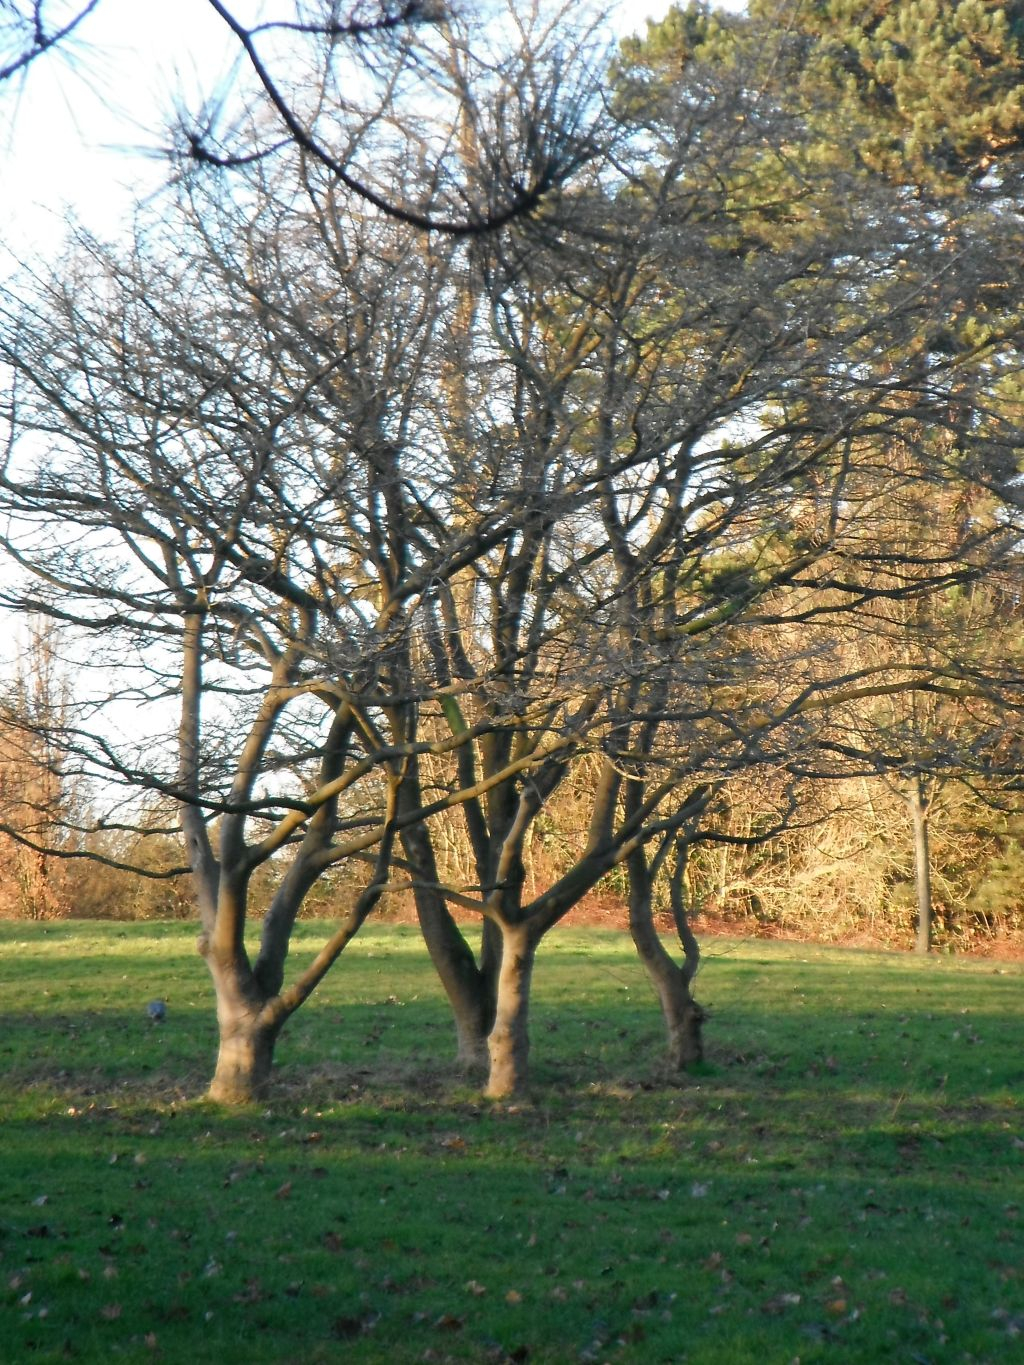 Photo taken by me - trees - Bruntwood Park Manchester